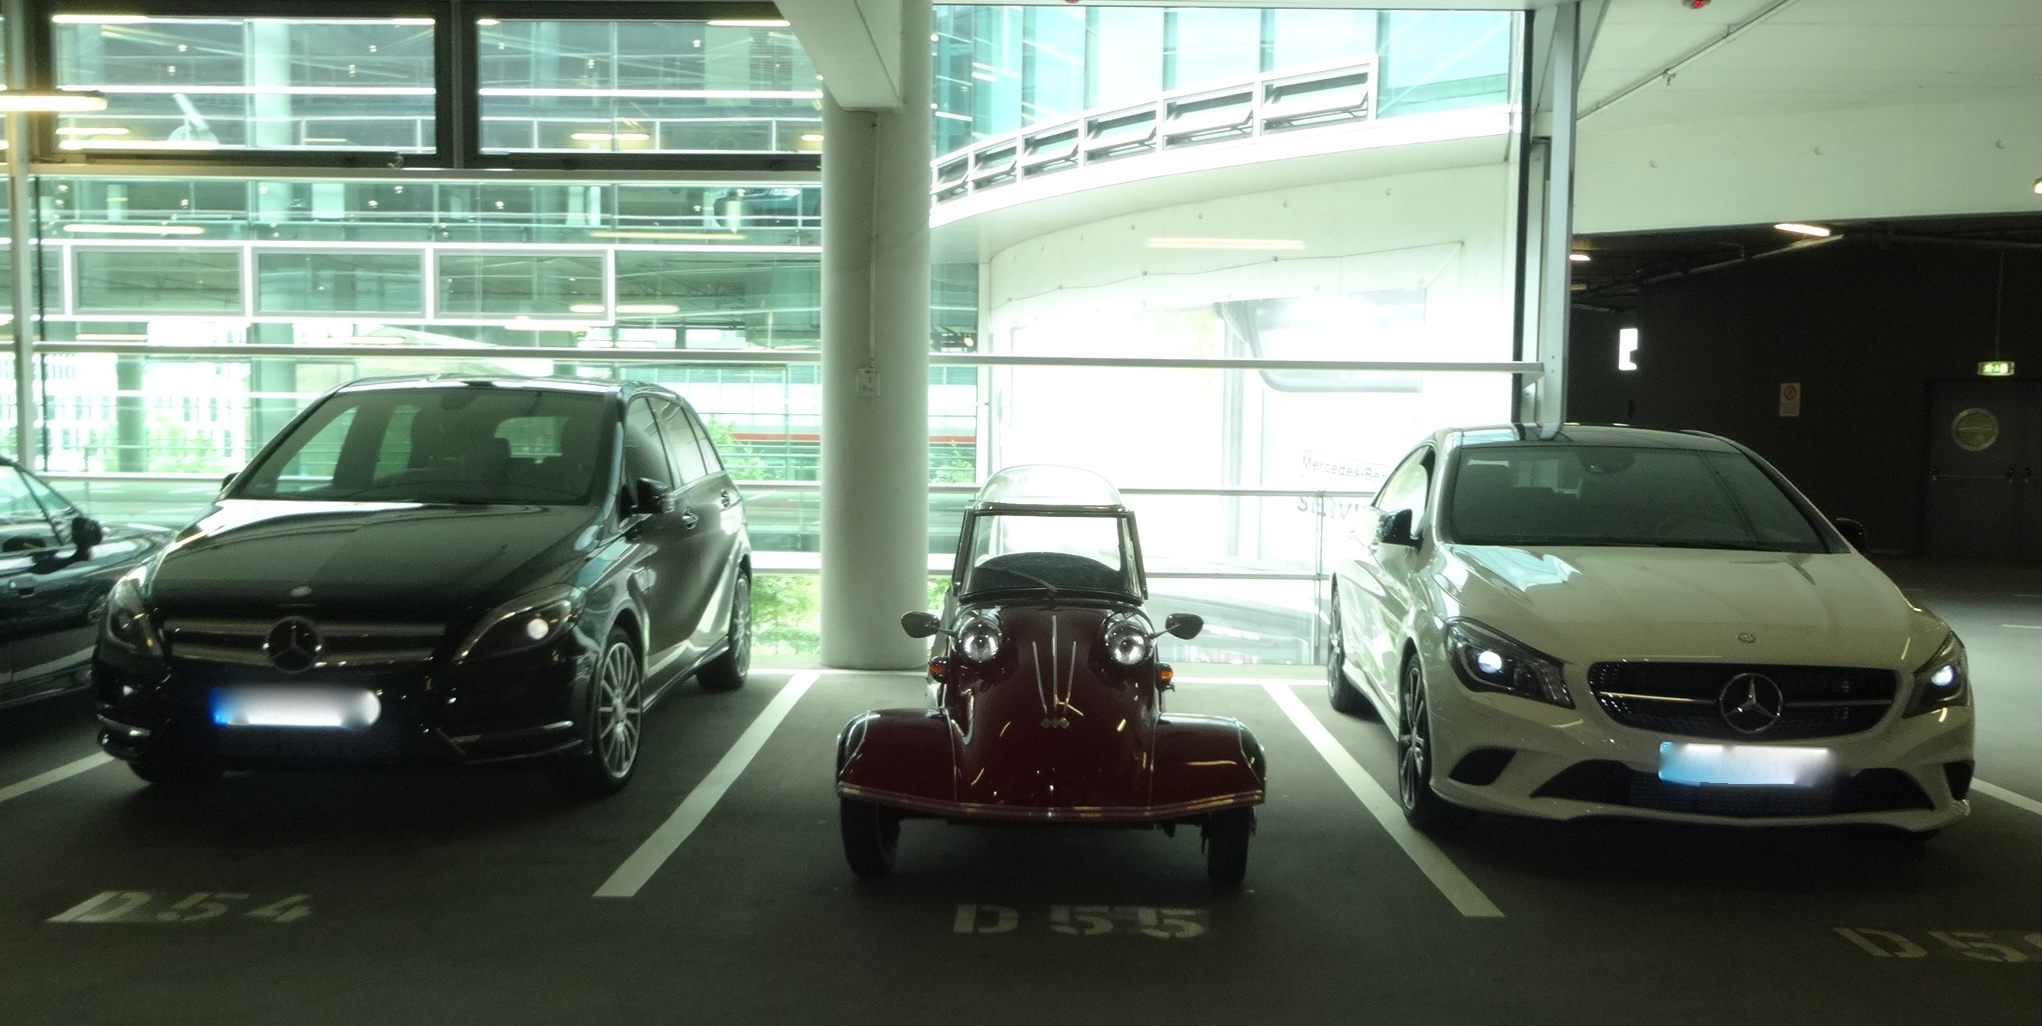 a Messerschmitt 3-wheeler between two large Mercedes cars